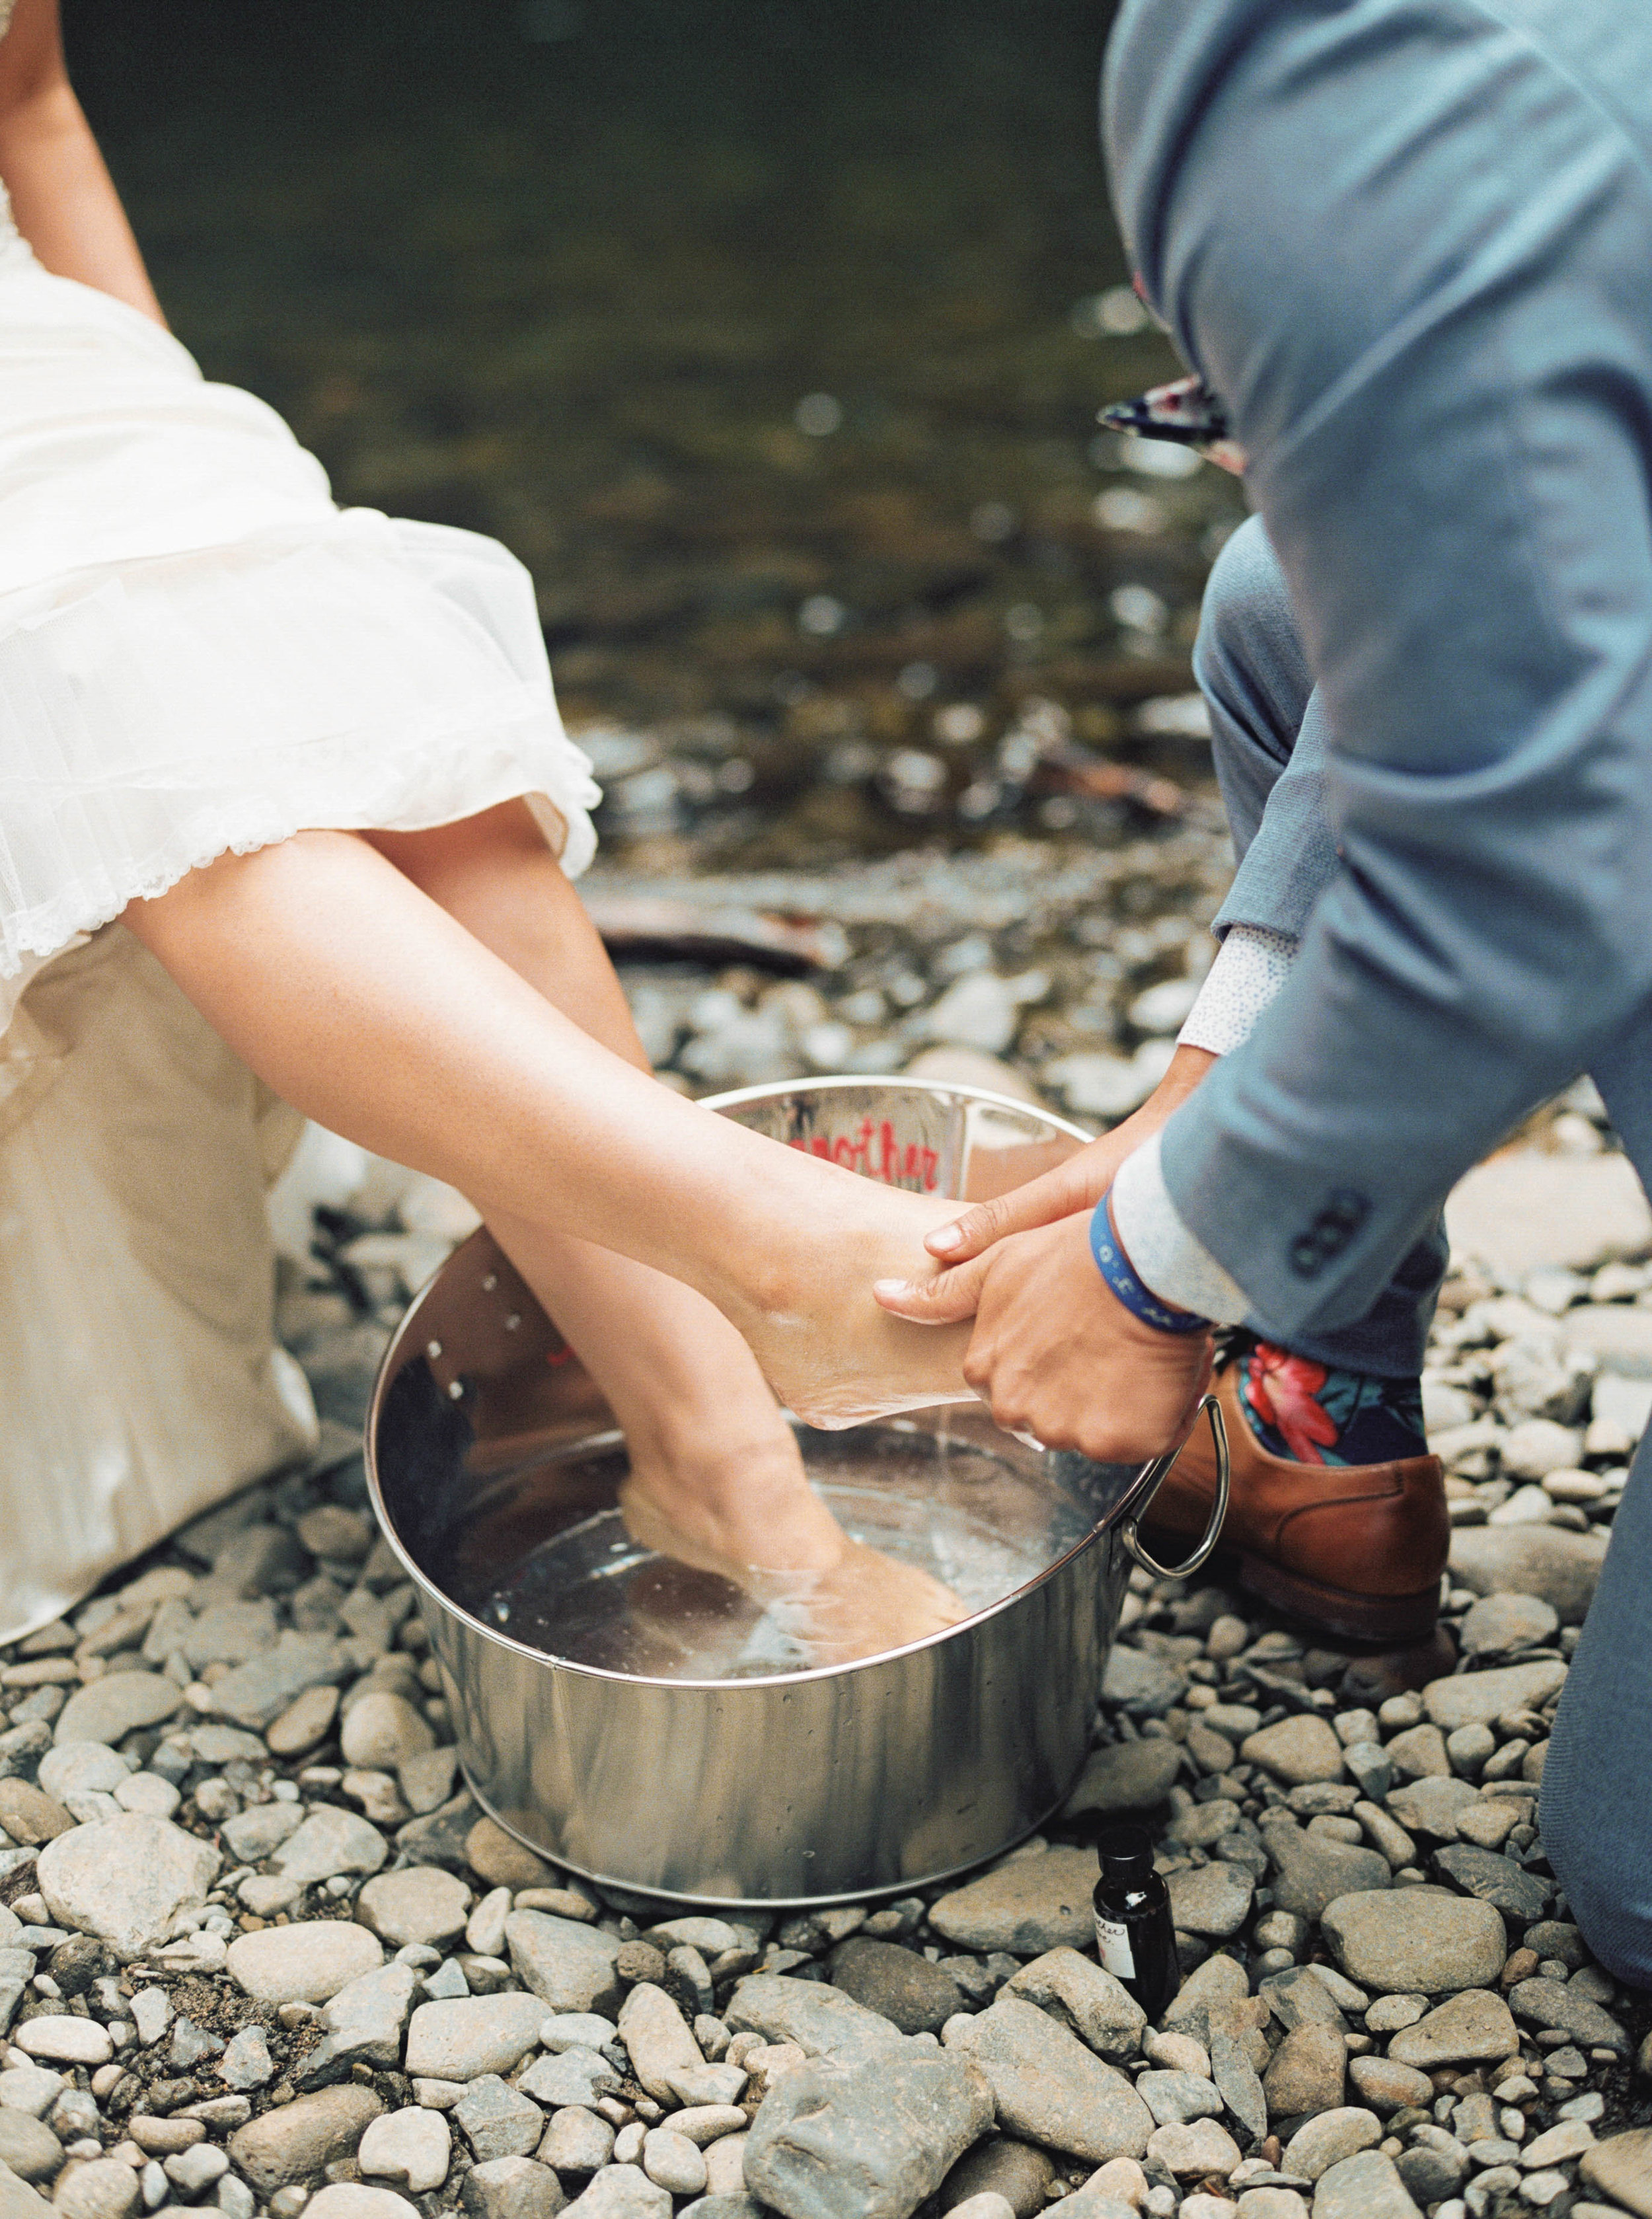 abiqua_falls_elopement_wedding_oregon_photographer_videographer_128.jpg